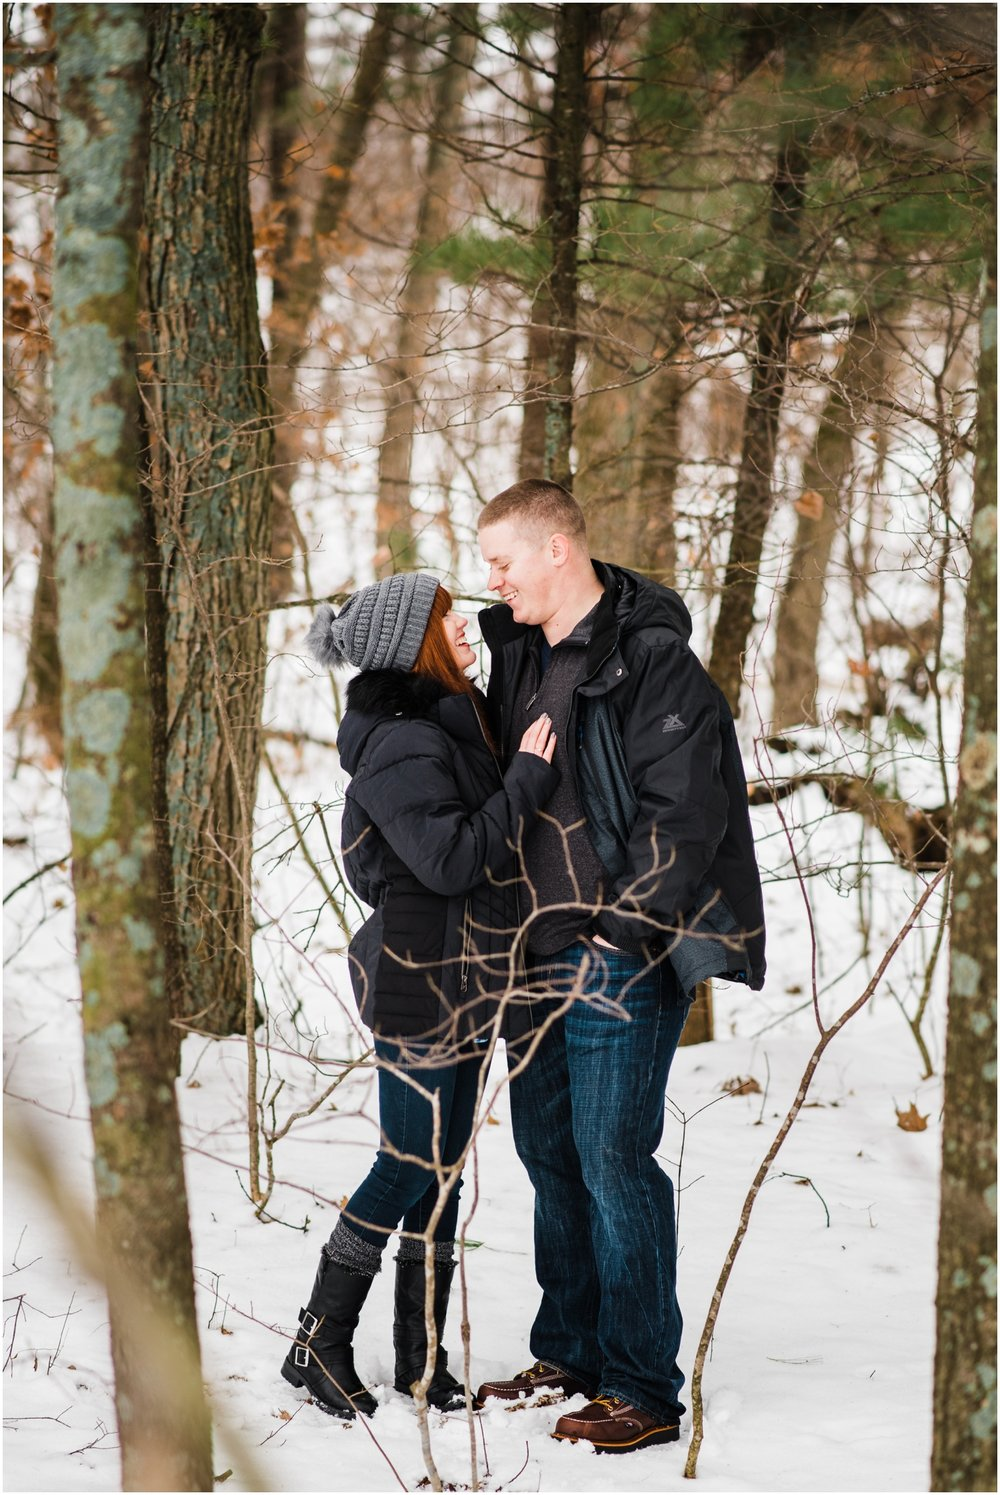 Devils-Lake-Baraboo-Wisconsin-Engagement-Photographer-Lindsey-And-Cody-Engaged-163.jpg